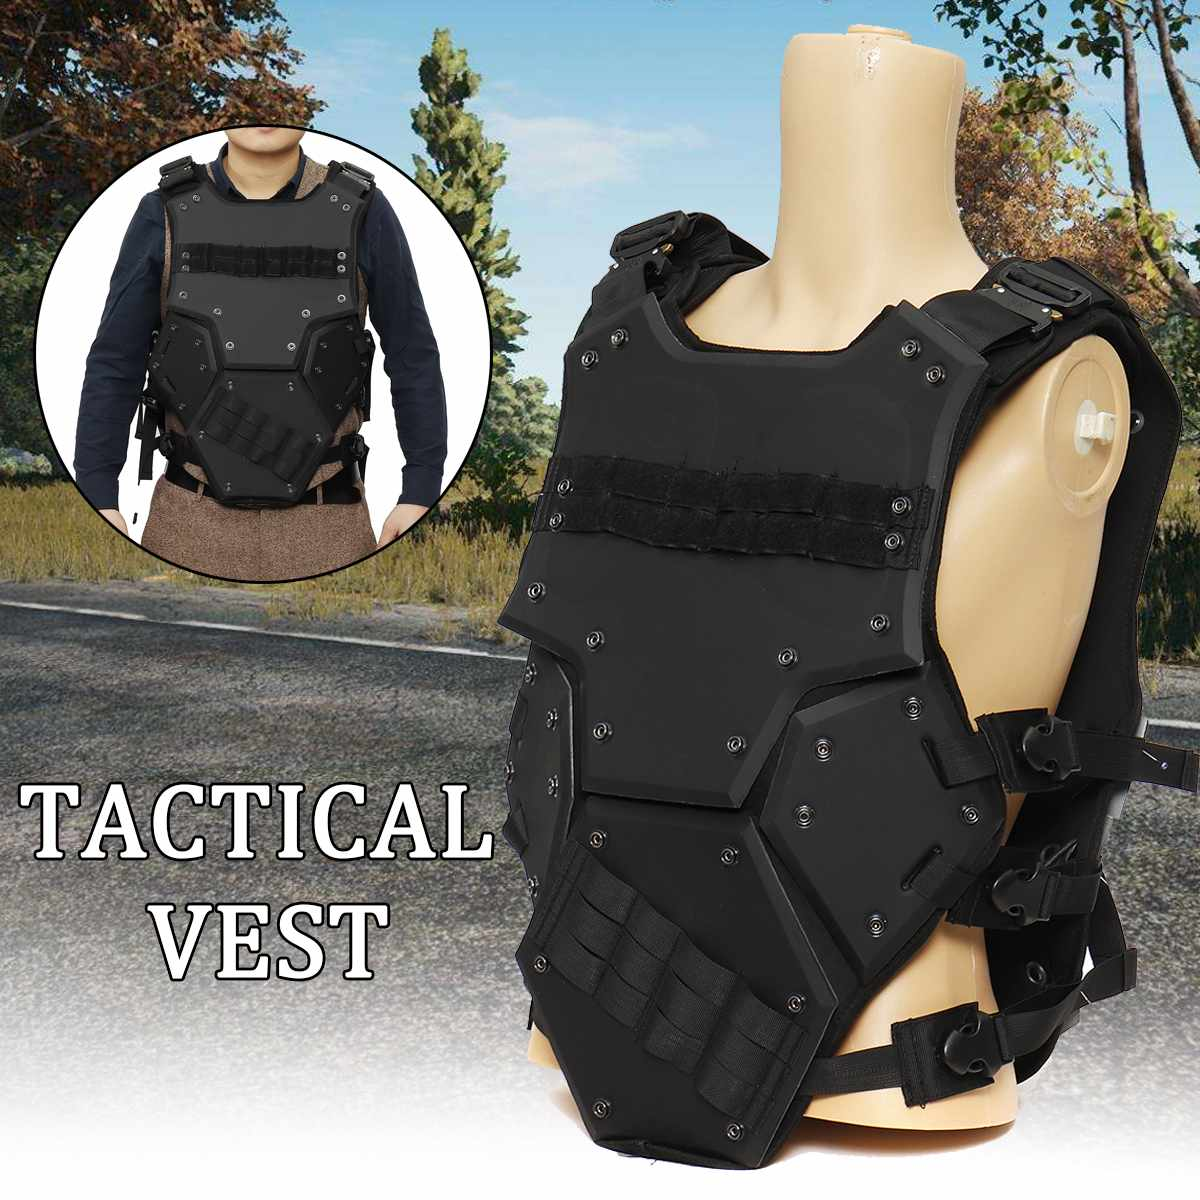 EVA Tactical Vest Molle Plate Combat Gilet Military Field Battle Waistcoat Protective Security Outdoor Clothing Hunting Vest